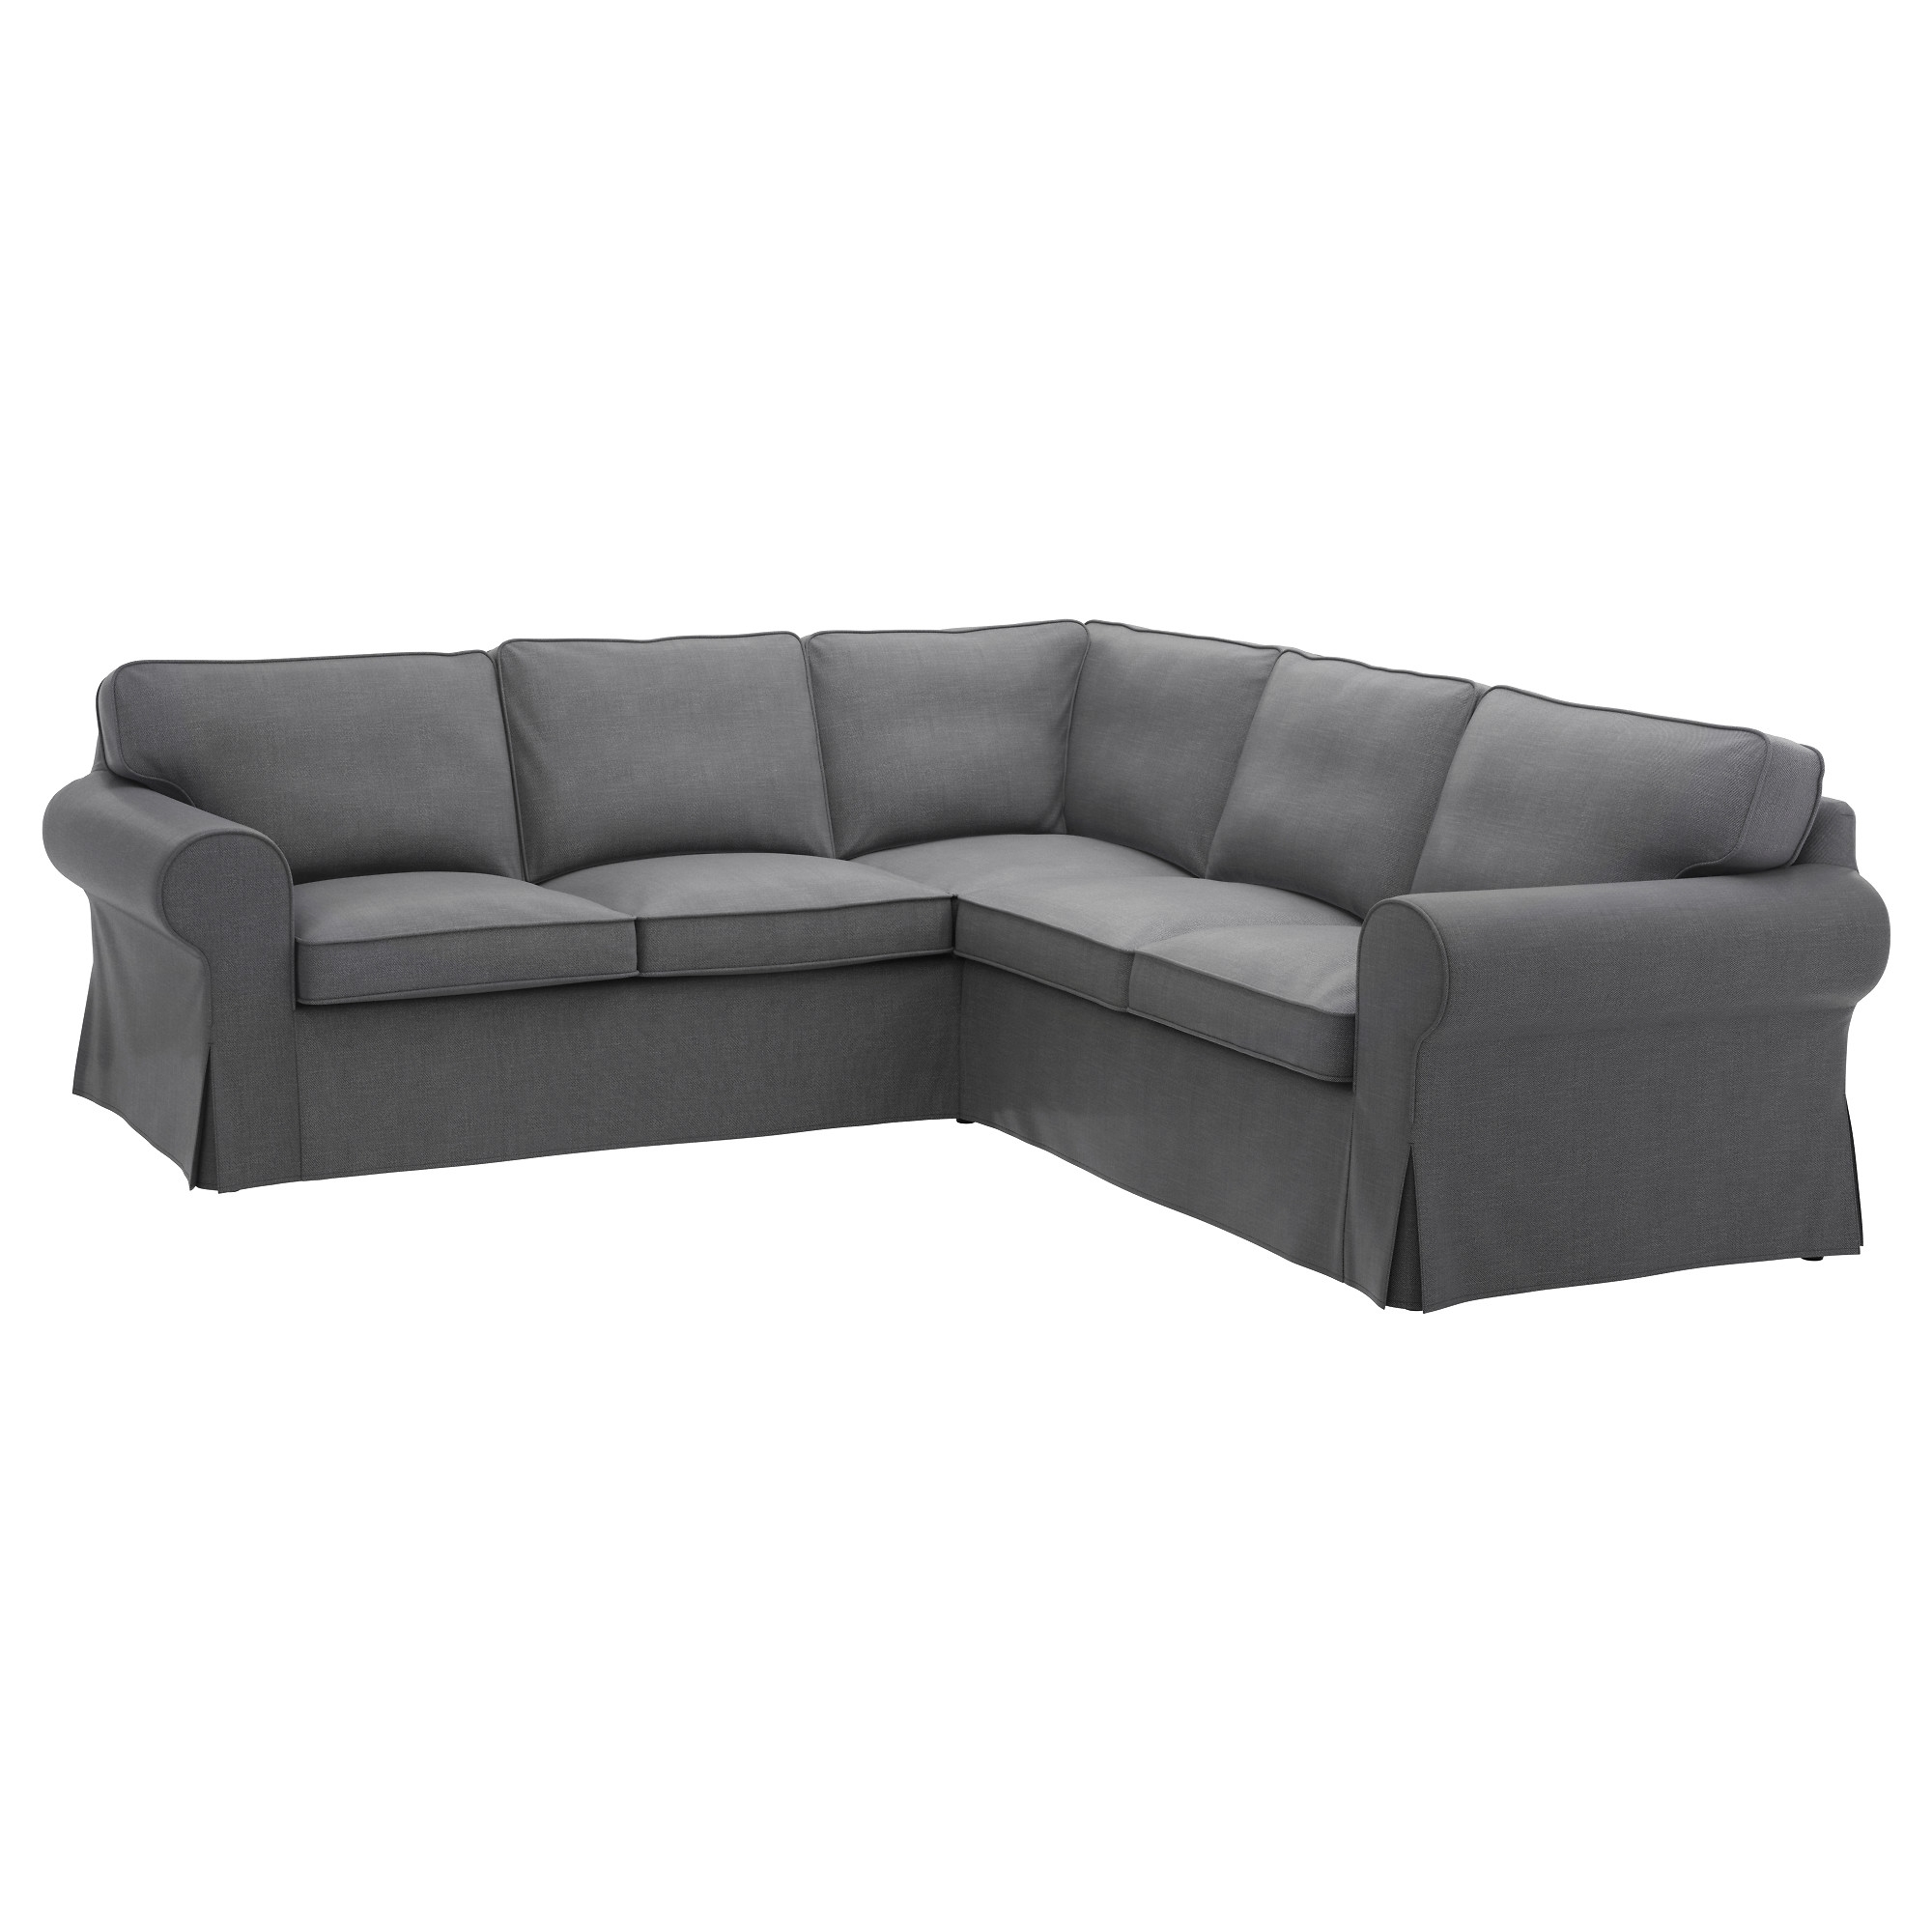 of modern modular couch sofa grey sectionals size contemporary chaise full sectional leather sets couches sofas